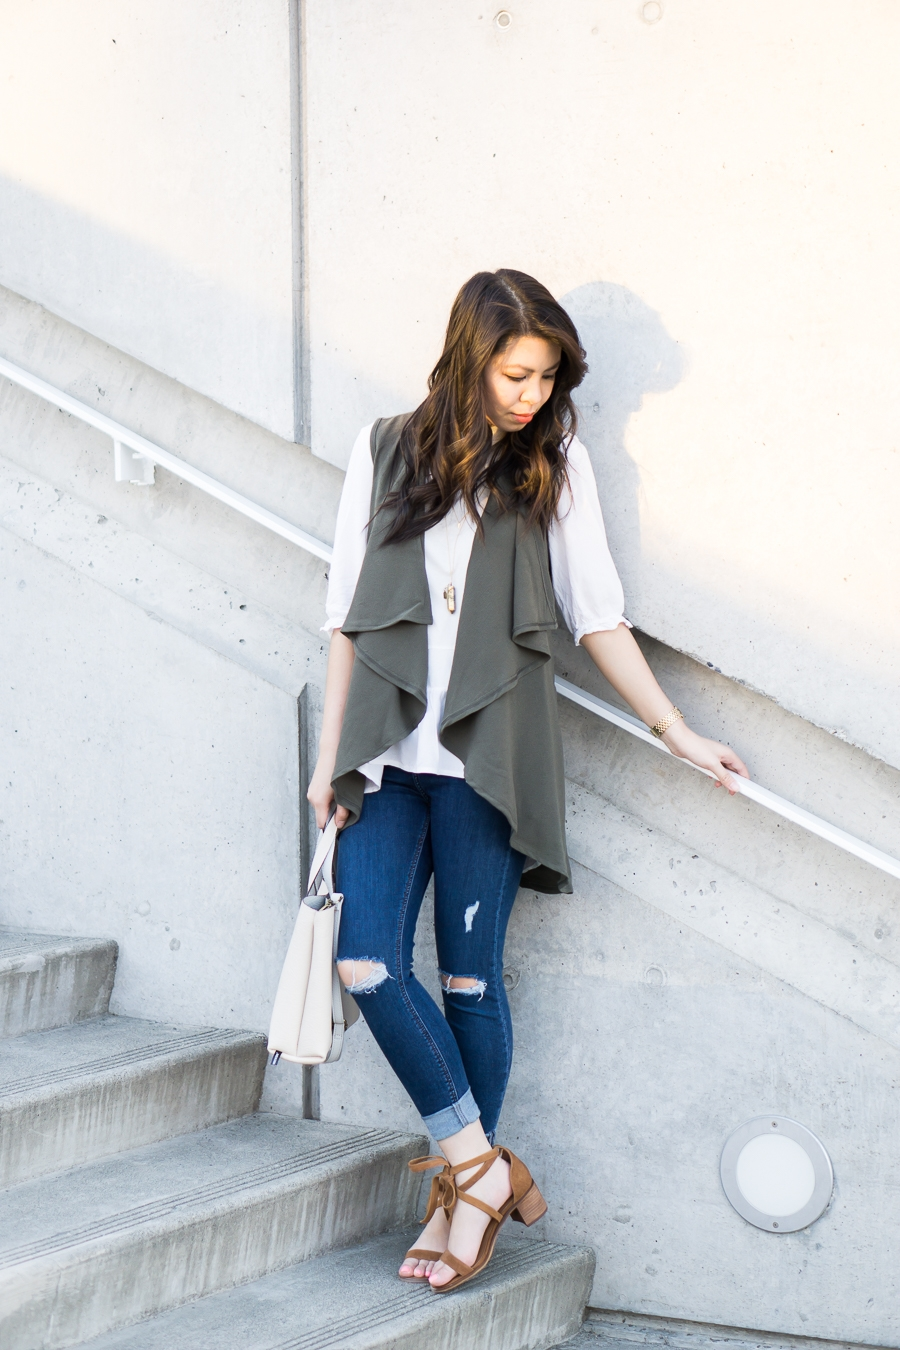 bf44c7abb1 The End of Summer - How to Transition your Summer Clothes Into Fall ...